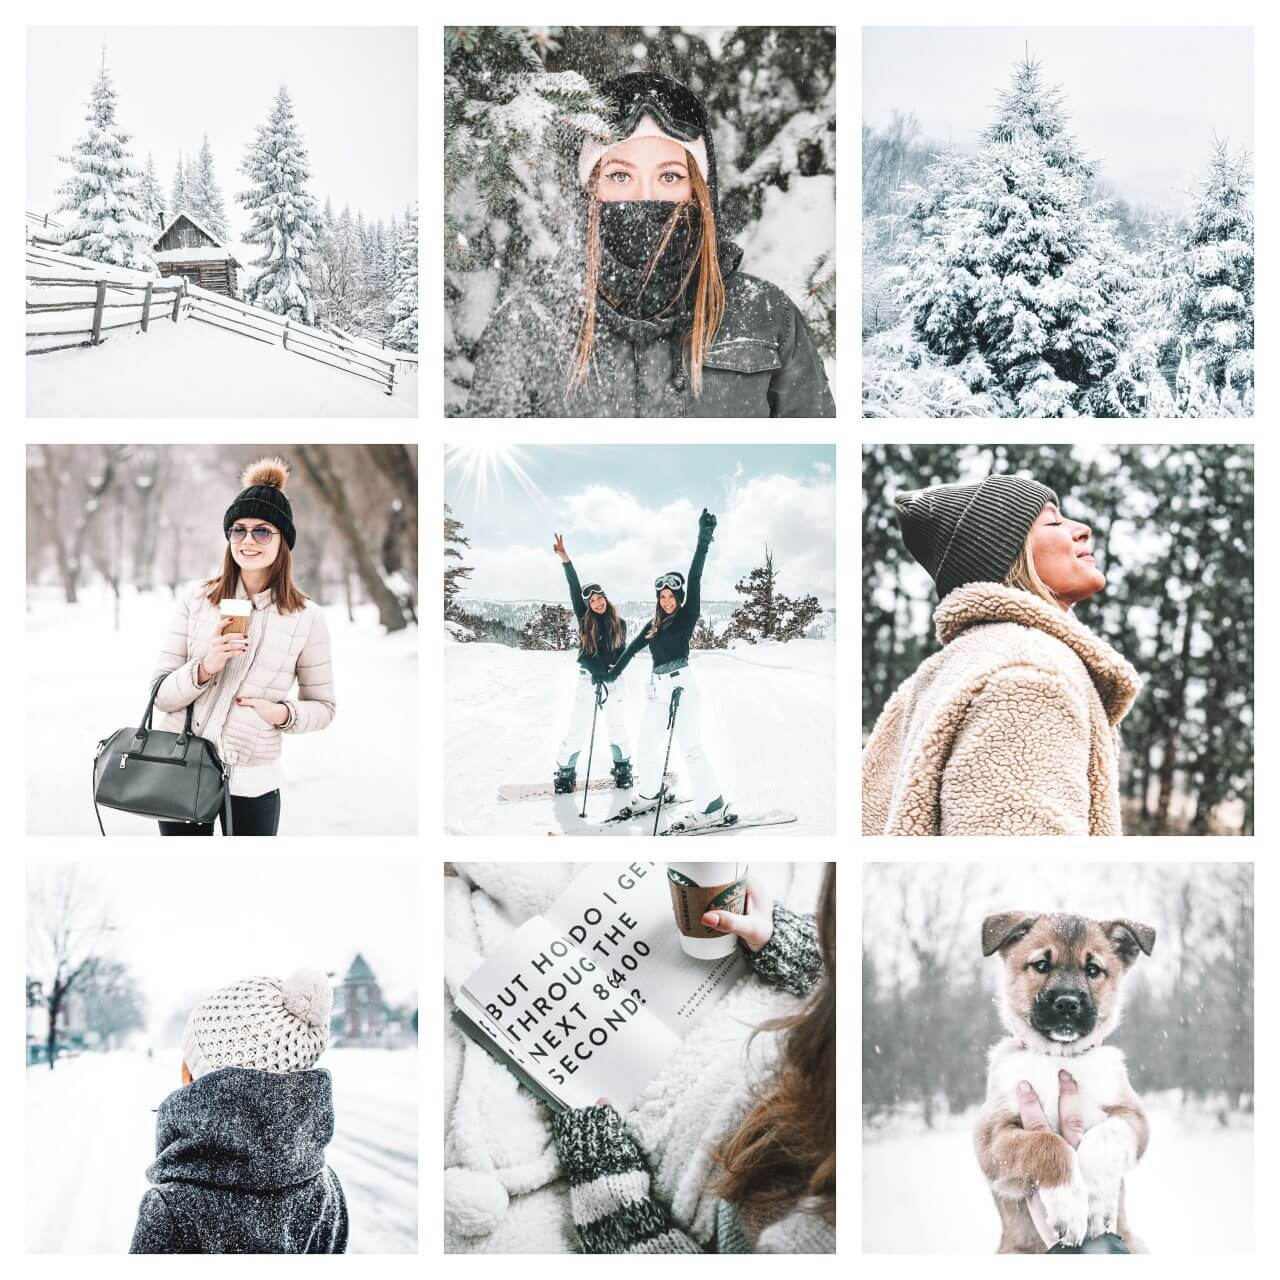 Snow Fever moodboard preset filters Pixgrade for mobile and desktop